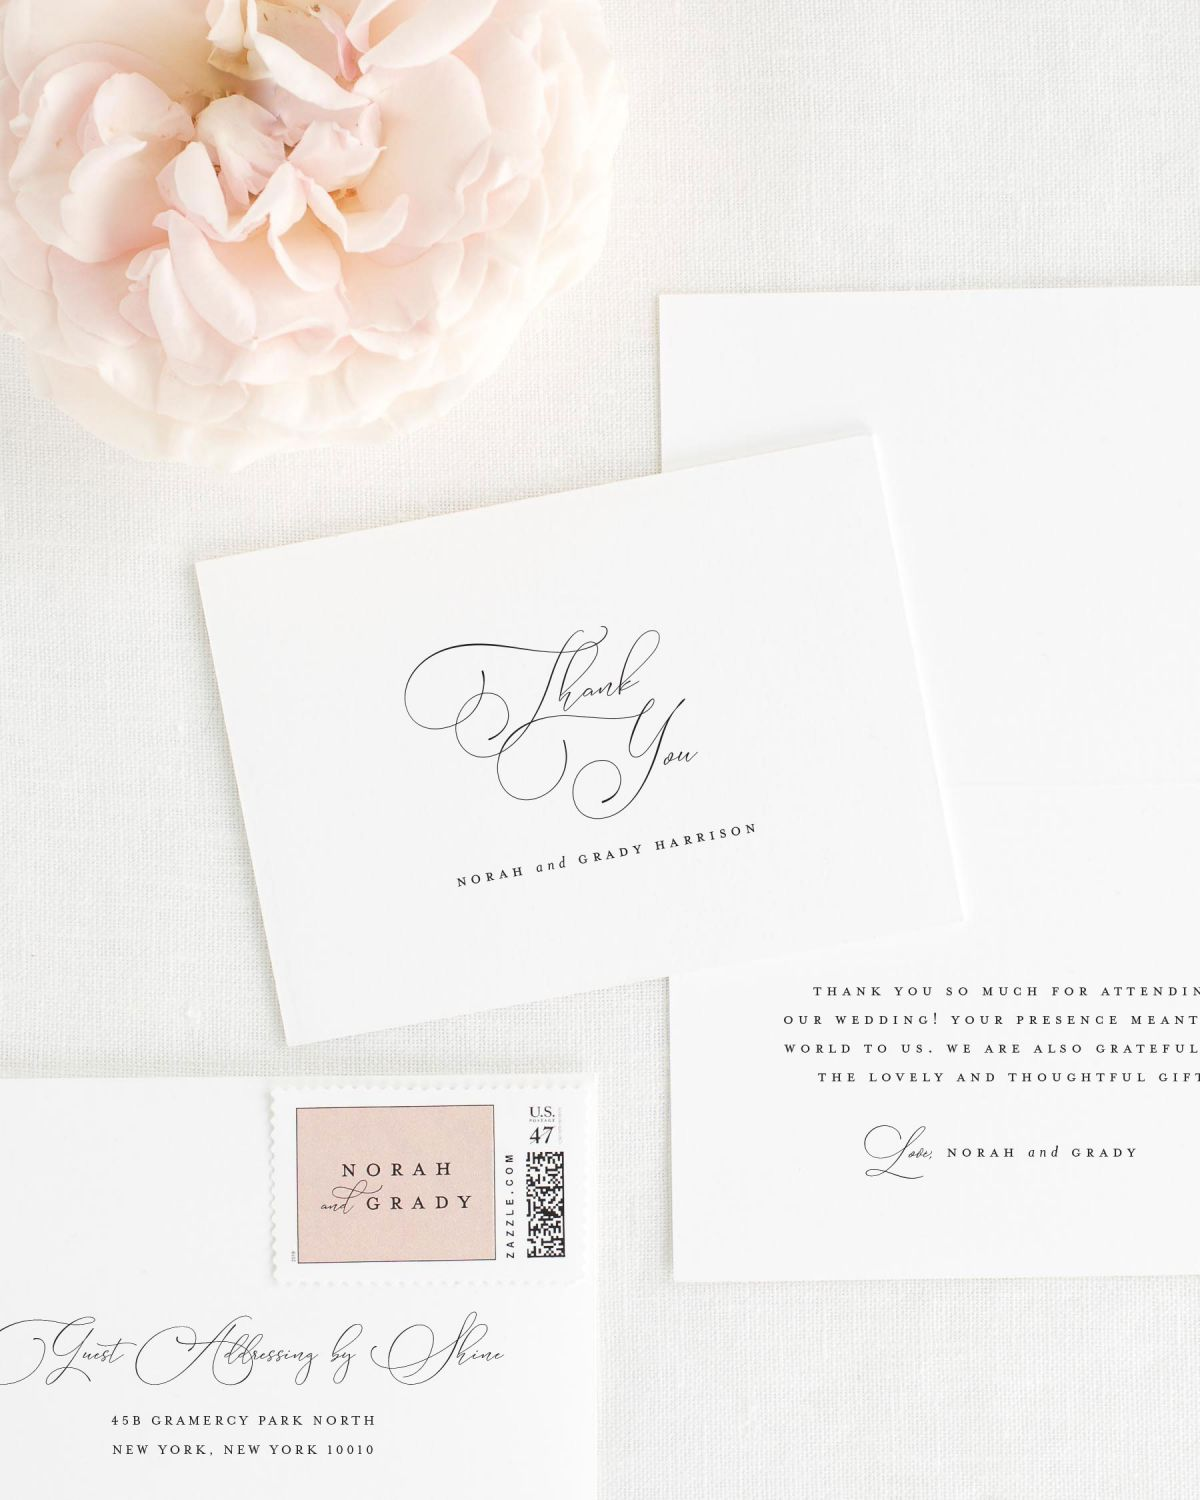 Large Script Names Thank You Cards for Weddings